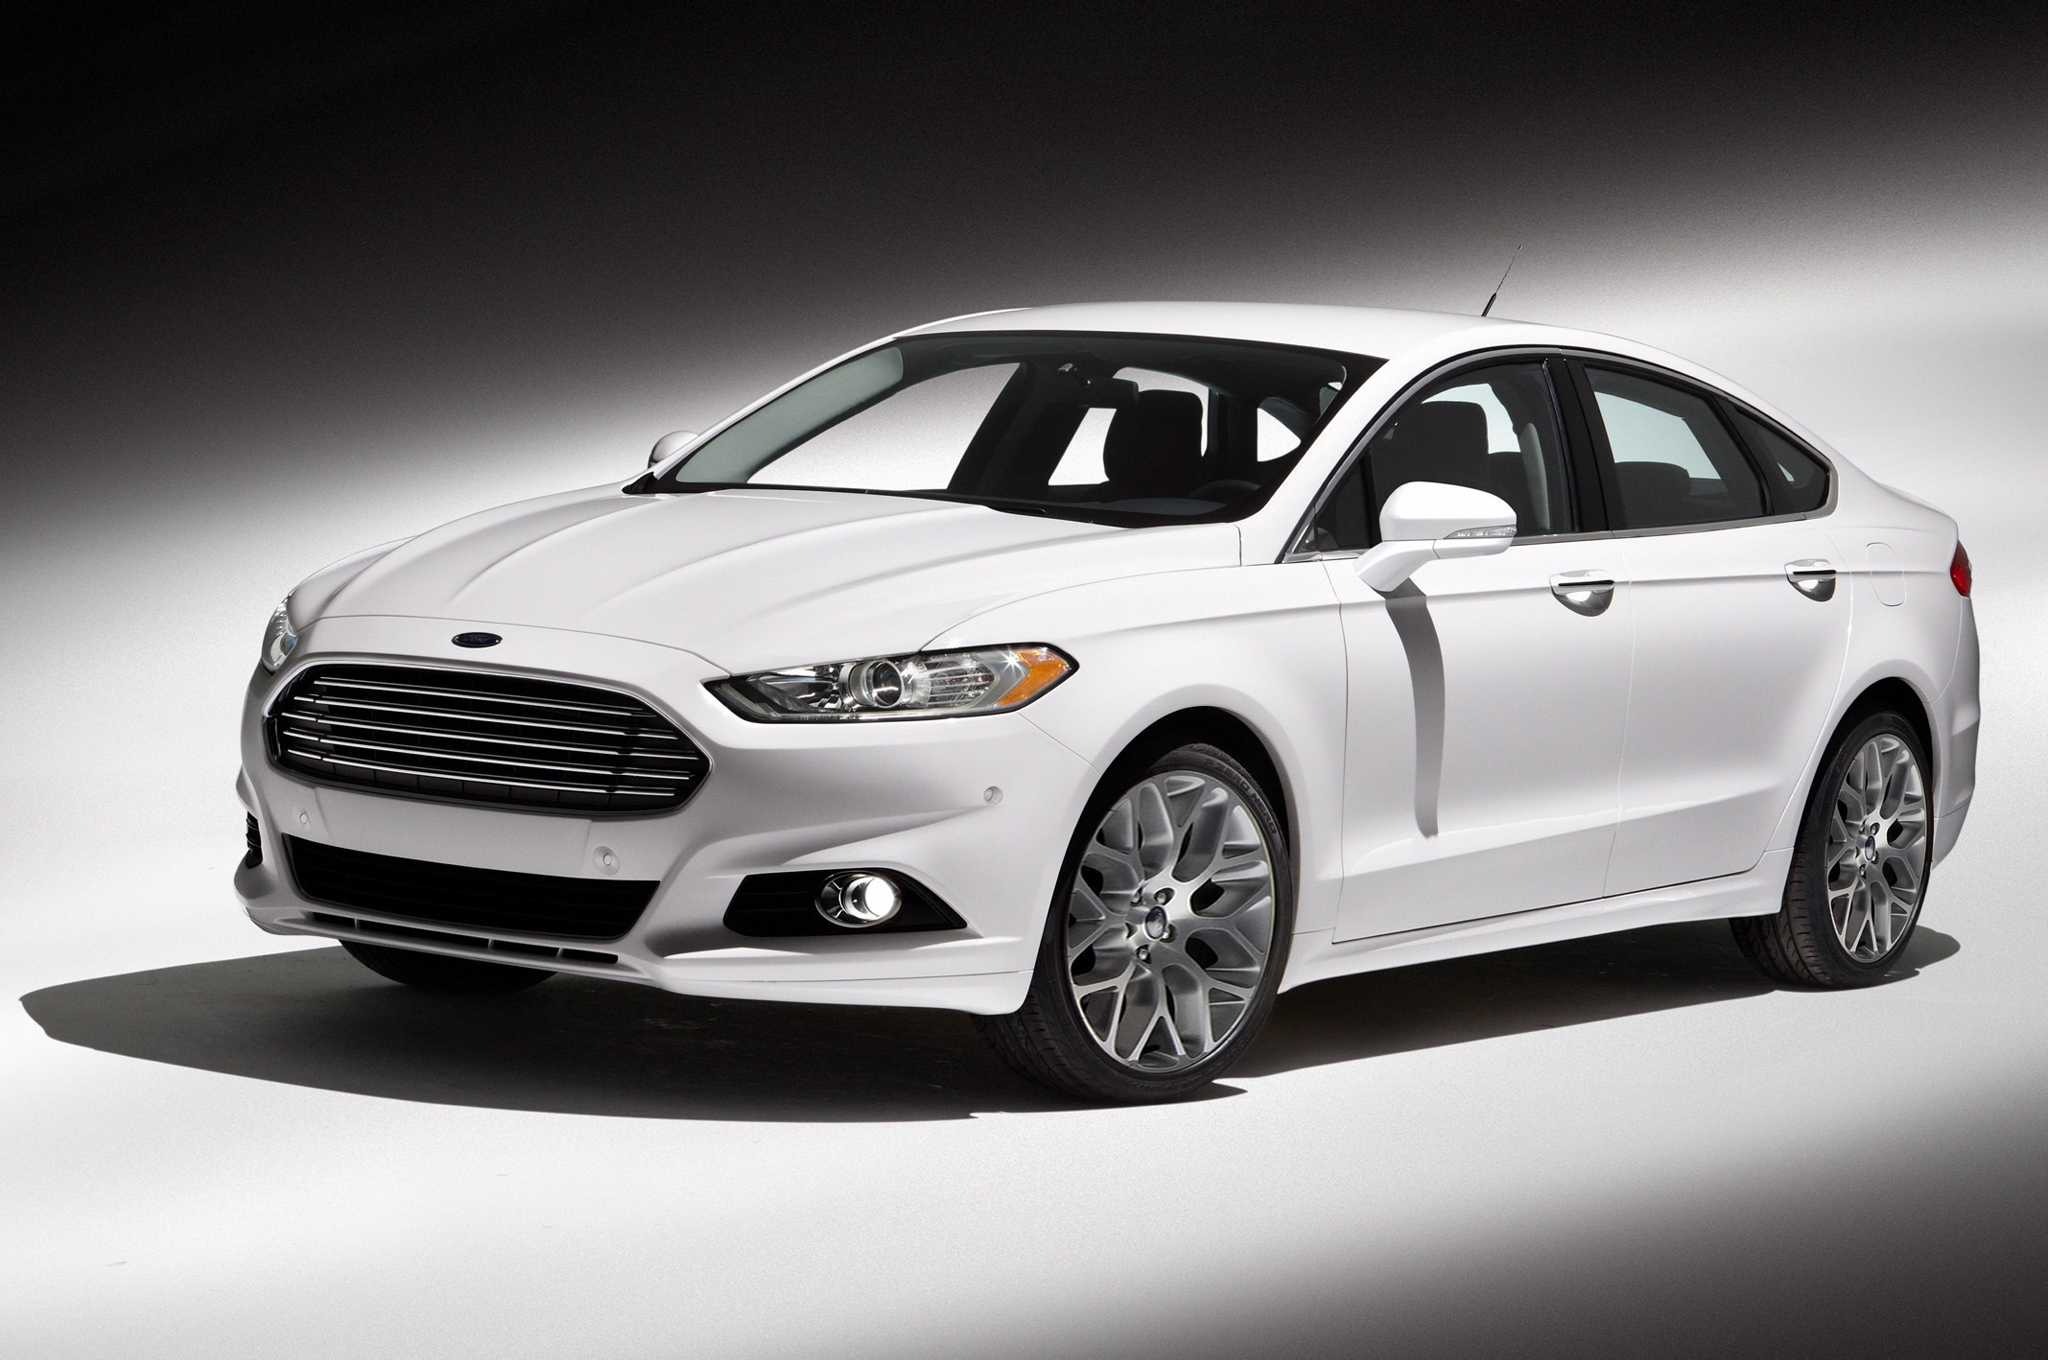 2013 Ford Fusion rappel